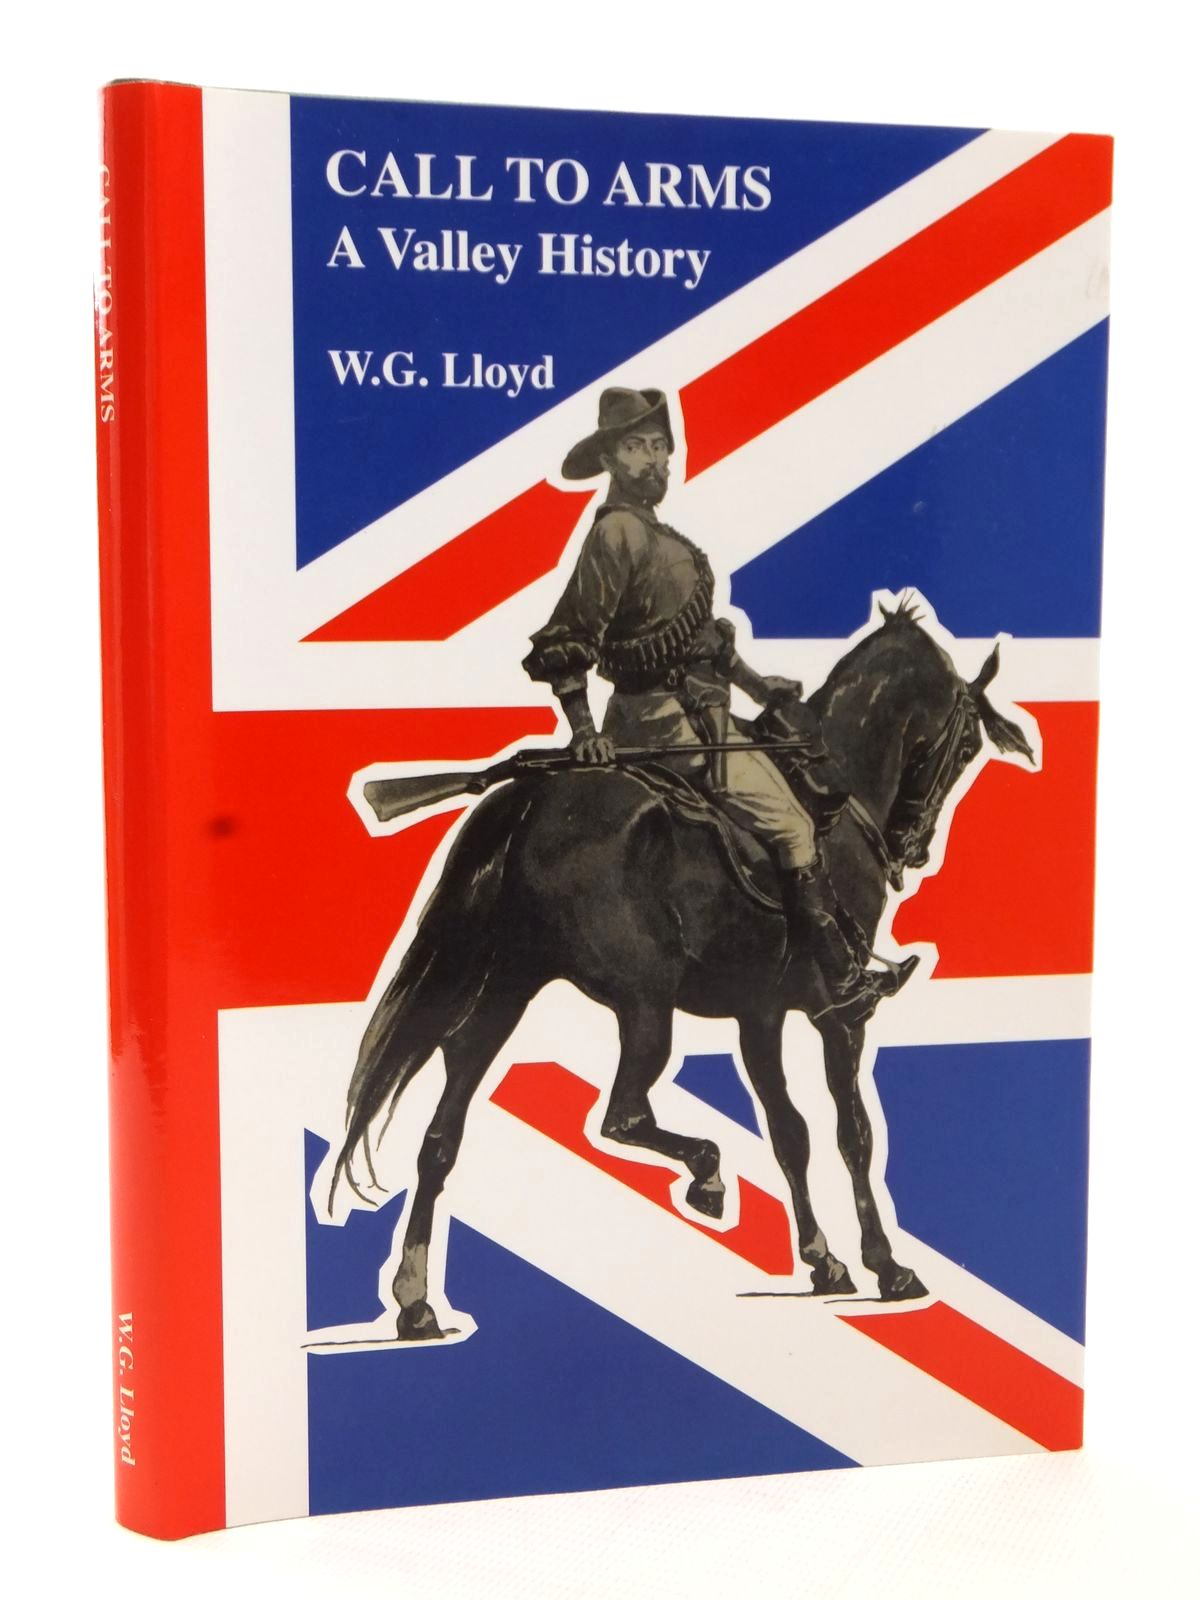 Photo of CALL TO ARMS A VALLEY HISTORY written by Lloyd, W.G. published by W.G. Lloyd (STOCK CODE: 1609269)  for sale by Stella & Rose's Books